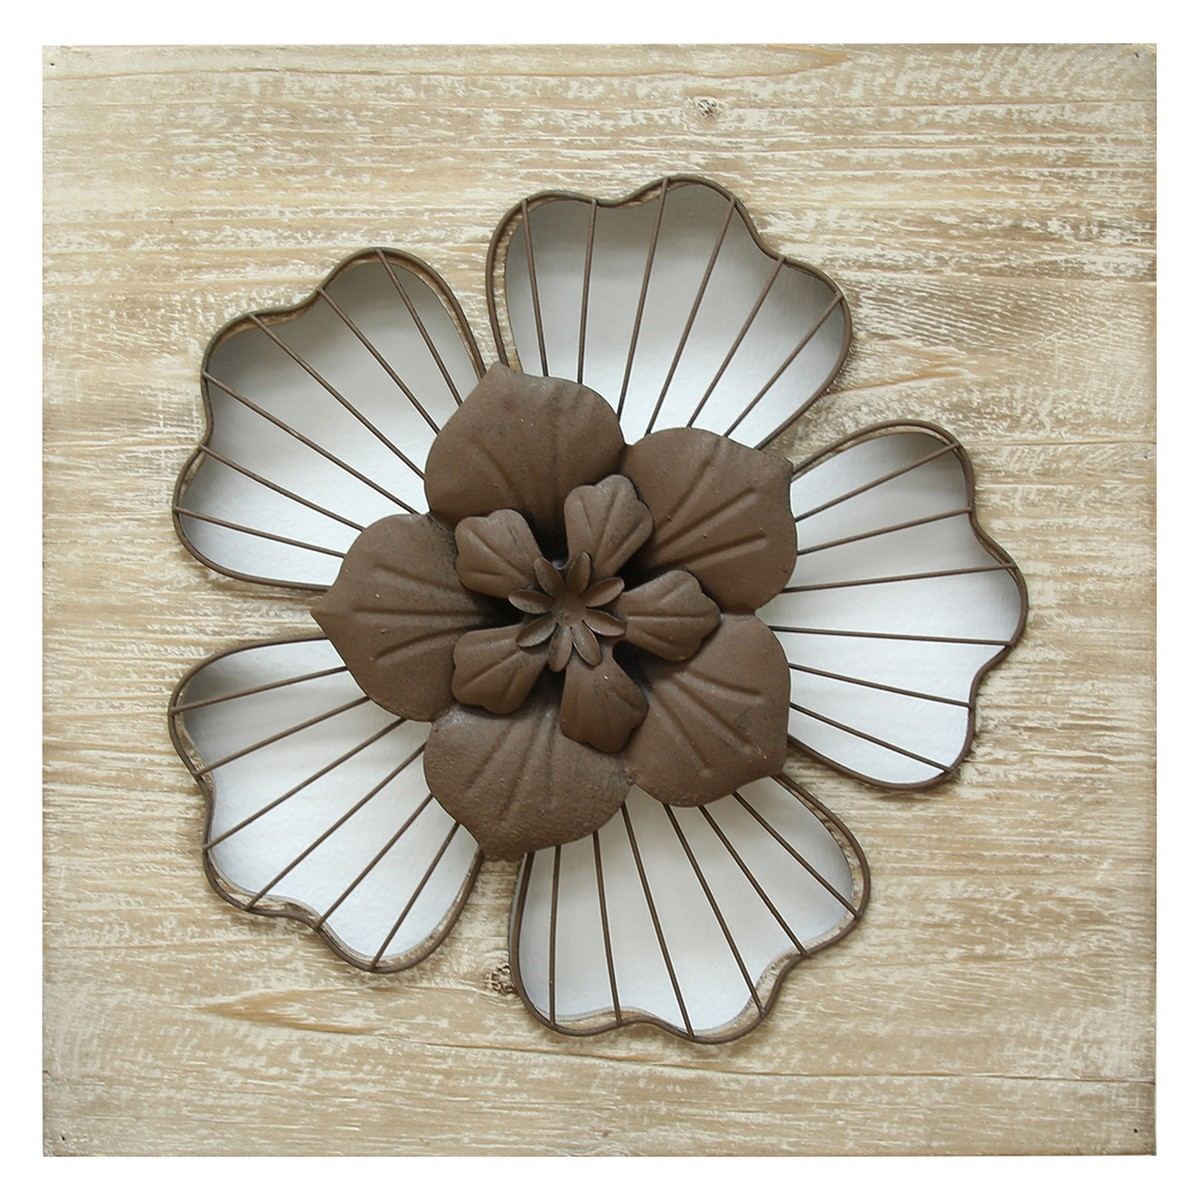 Stratton Home Decor Rustic Flower Wall Decor - Natural Wood/Espresso